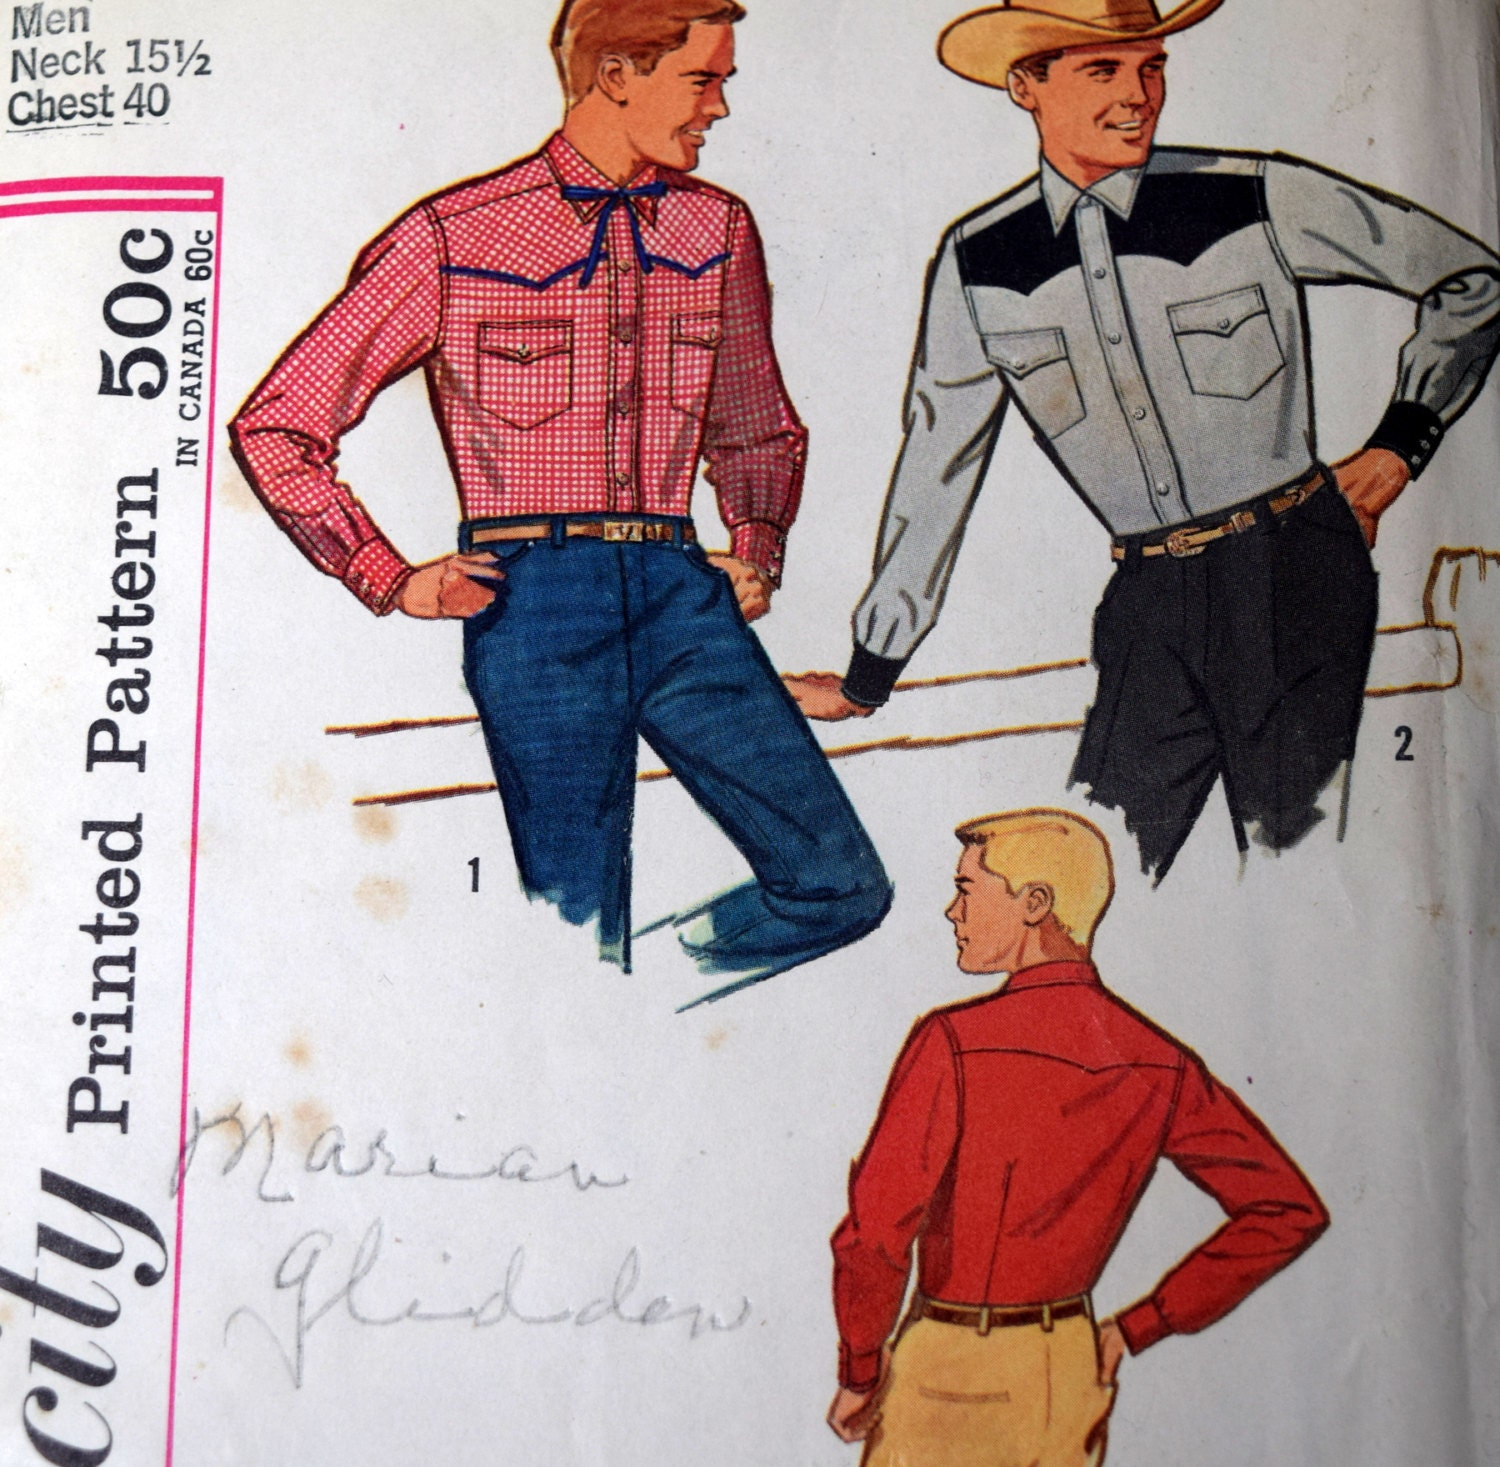 Simplicity 4703 mens fitted western shirts sewing pattern size 40 sold by pishposhnotions jeuxipadfo Images